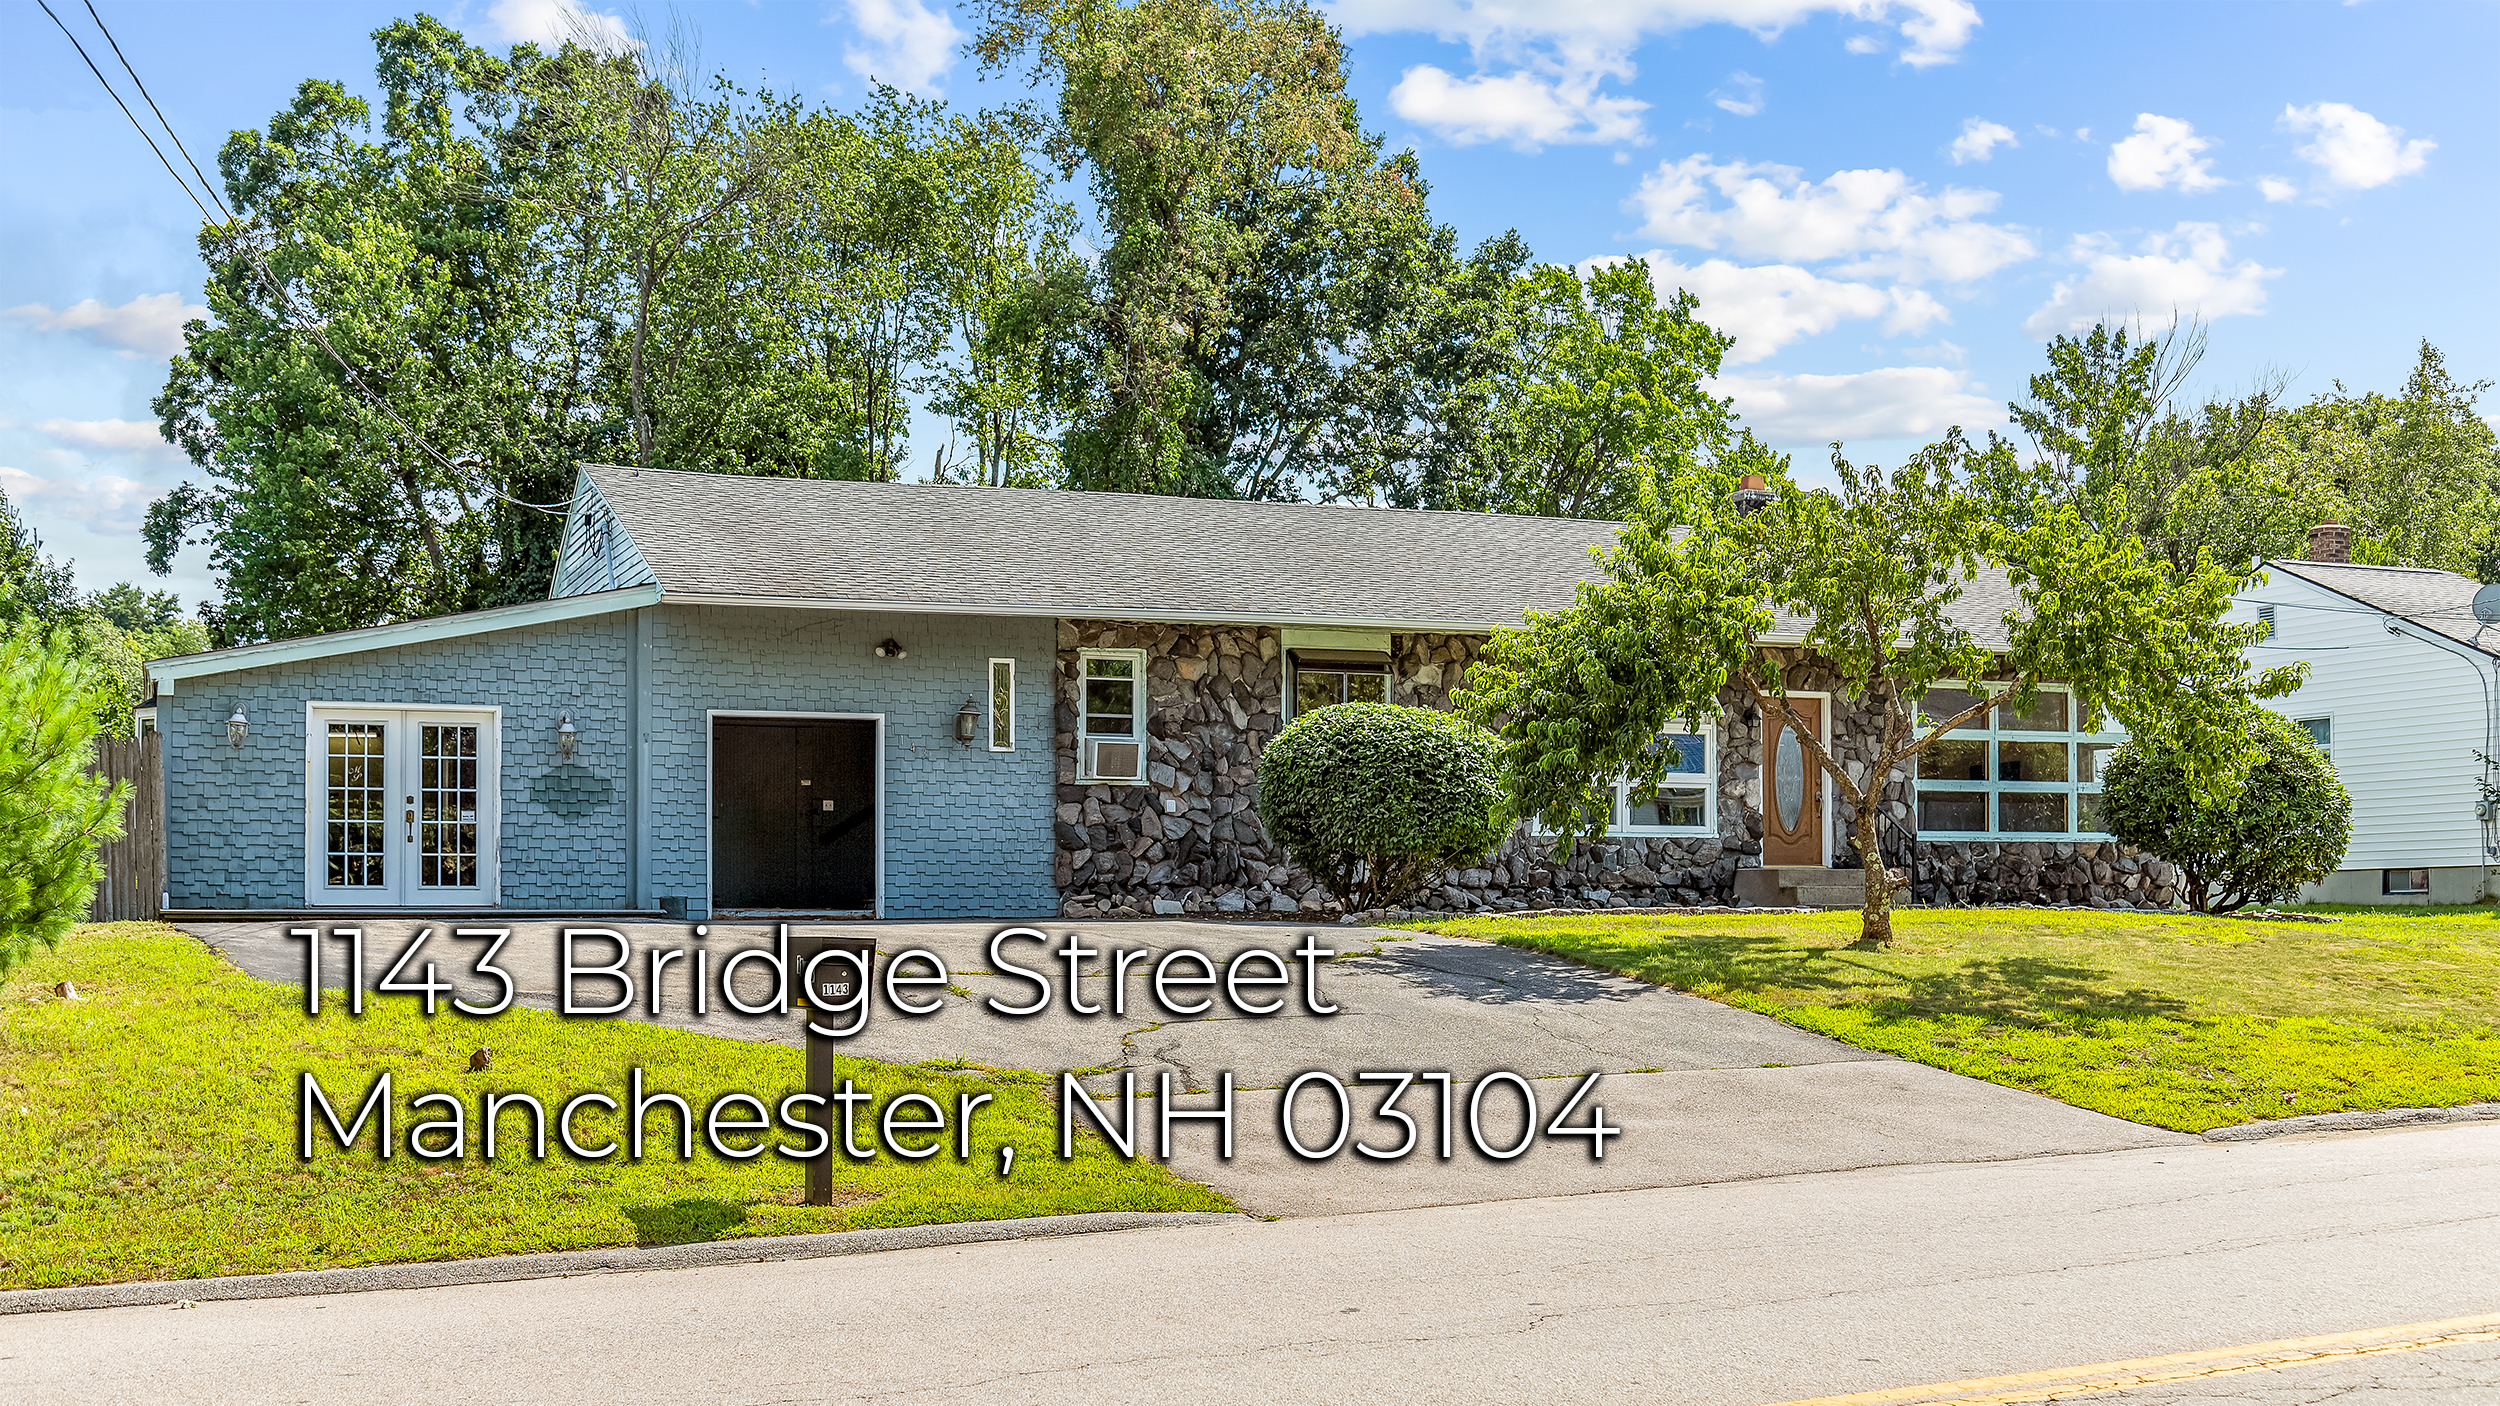 1143 Bridge St Manchester NH 03104